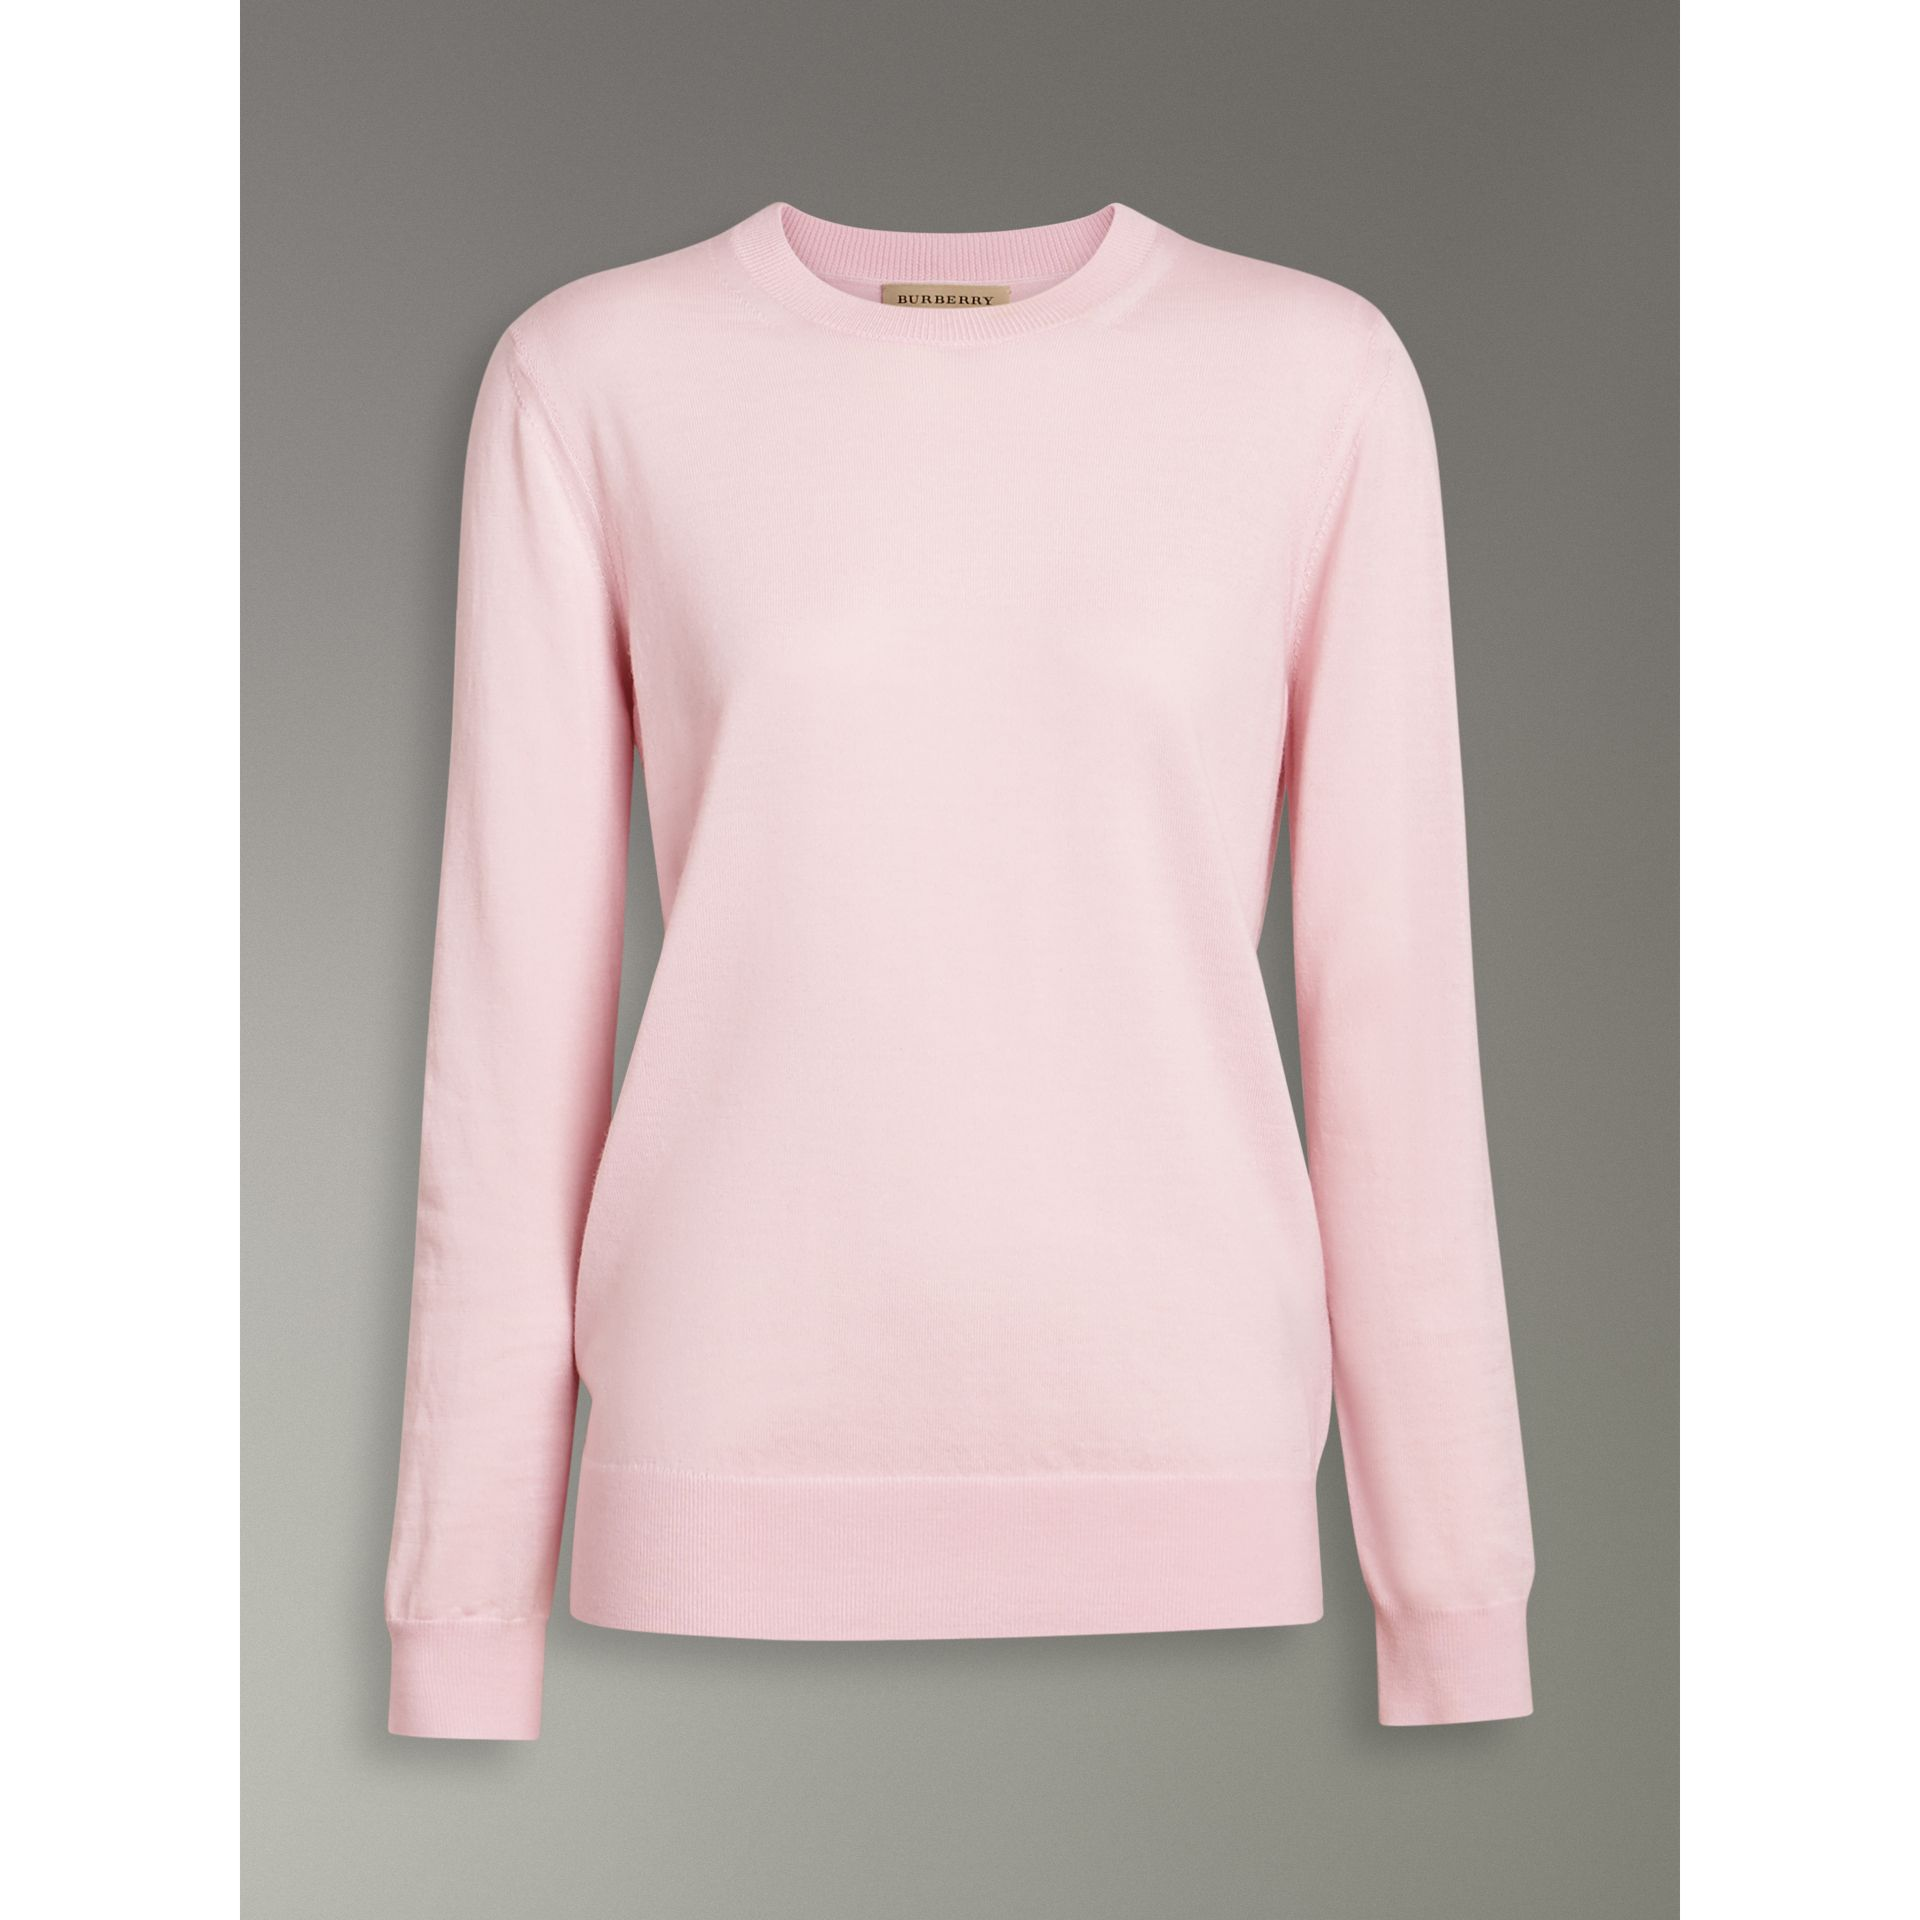 Check Elbow Detail Merino Wool Sweater in Light Pink - Women | Burberry Australia - gallery image 3